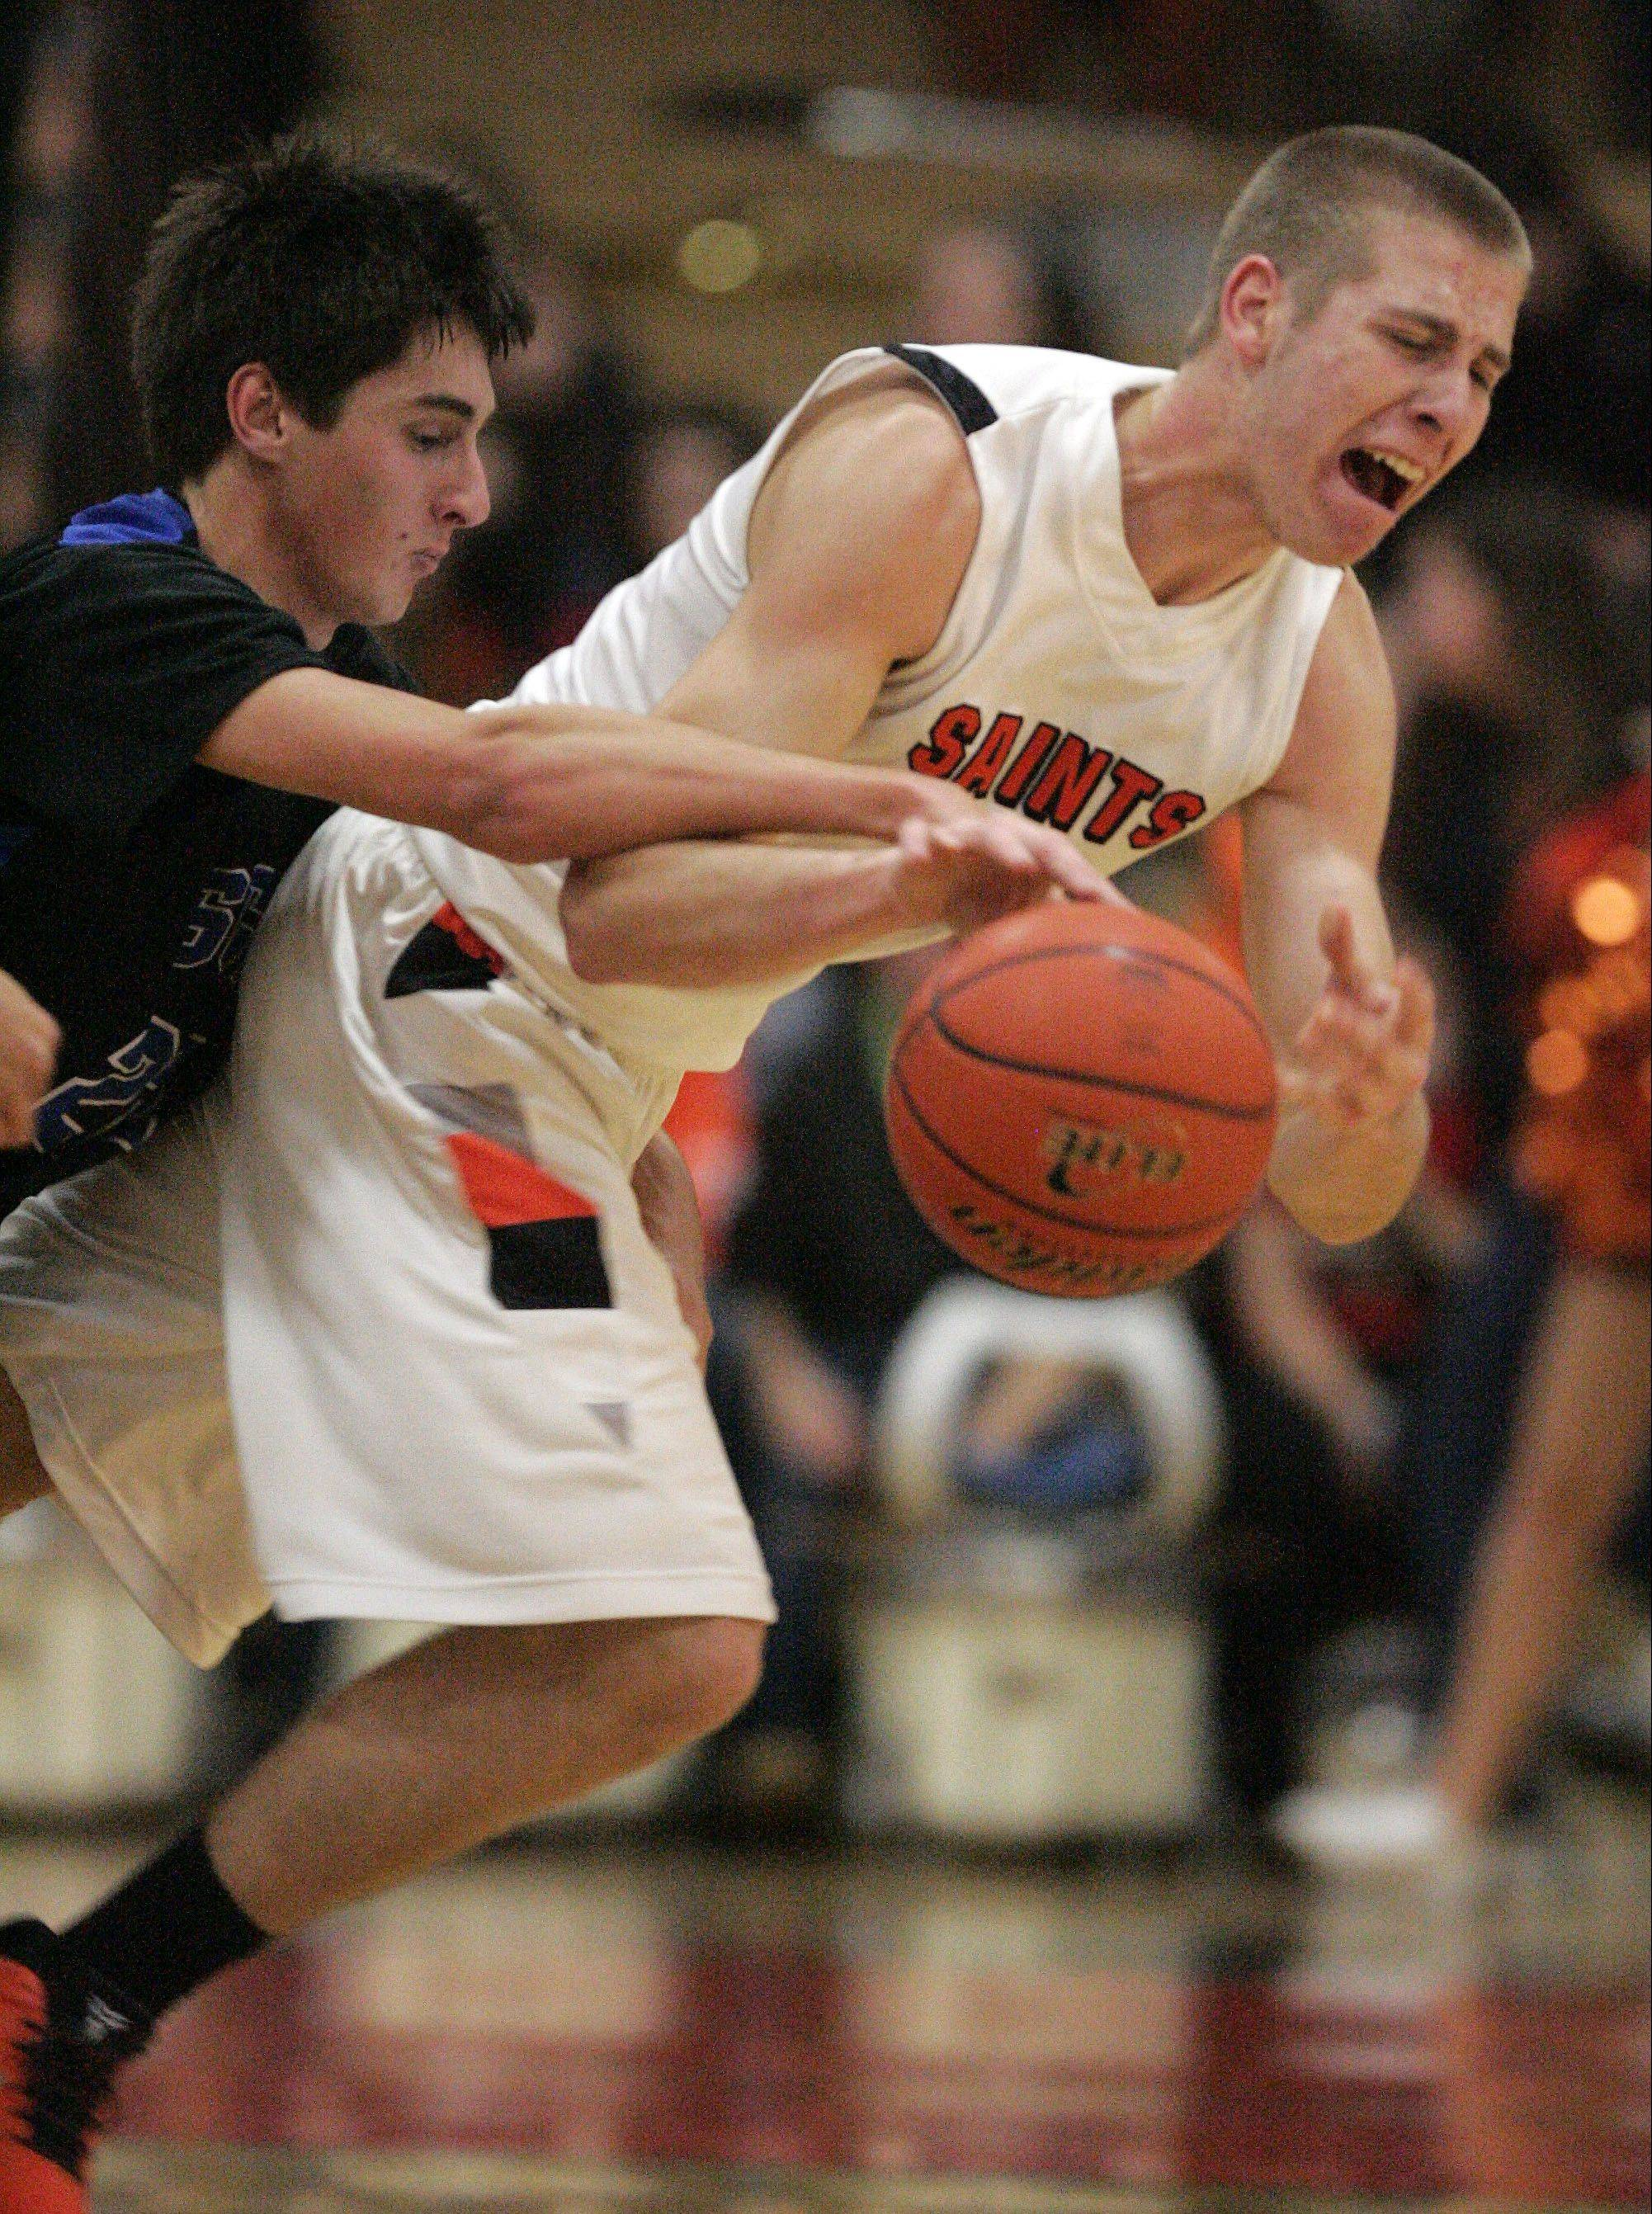 St. Charles East tops rival in OT